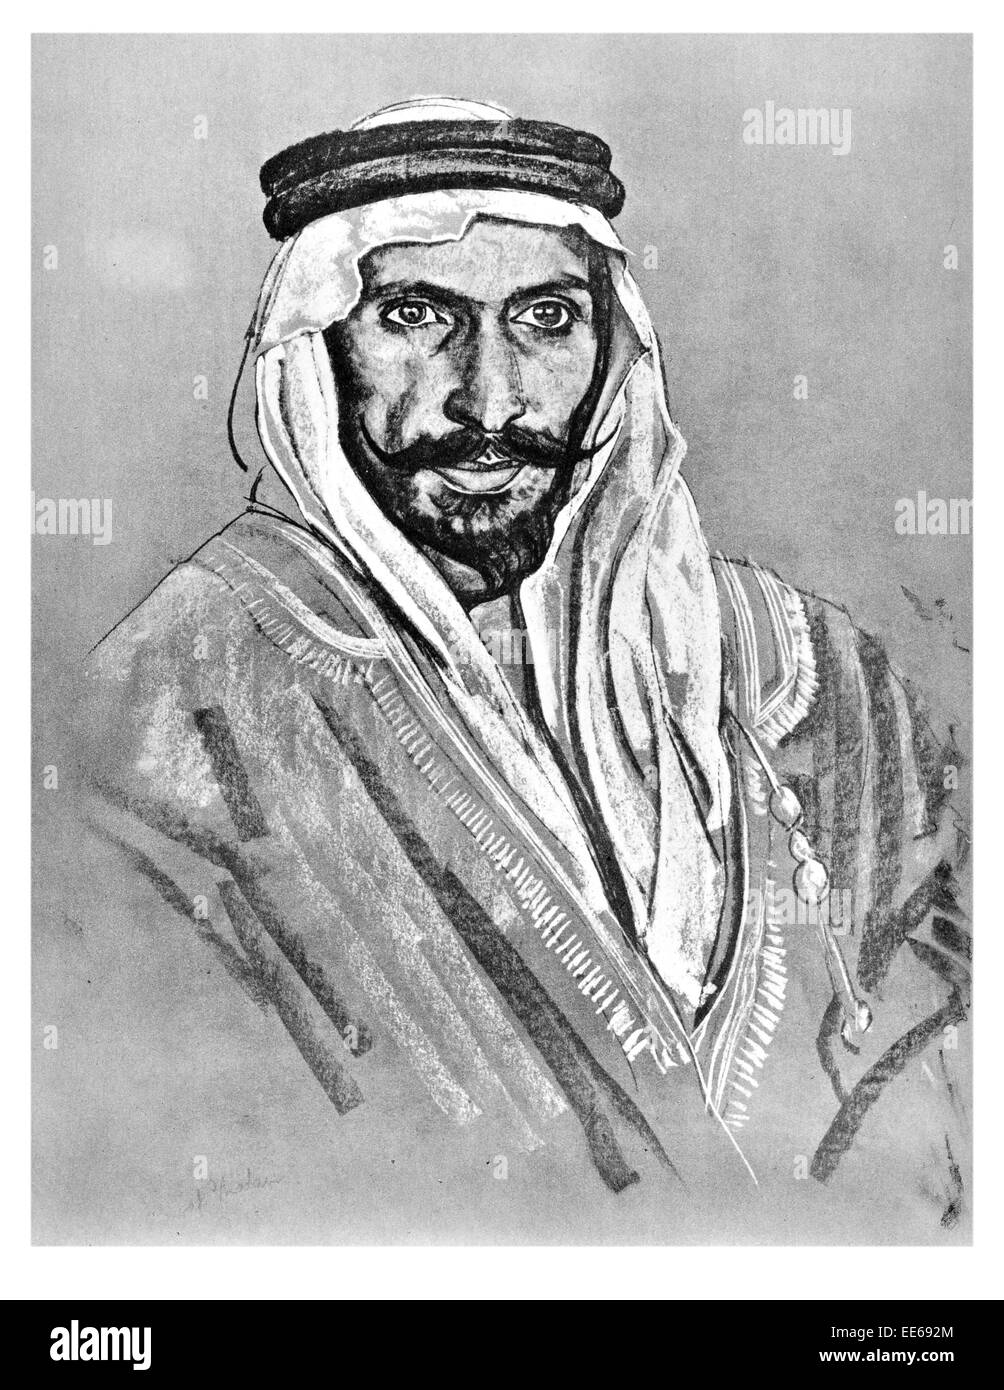 Nawaf Shaalan guide to Thomas Edward Lawrence of Arabia 16 August 1888 19 May 1935 archaeologist British Army officer - Stock Image